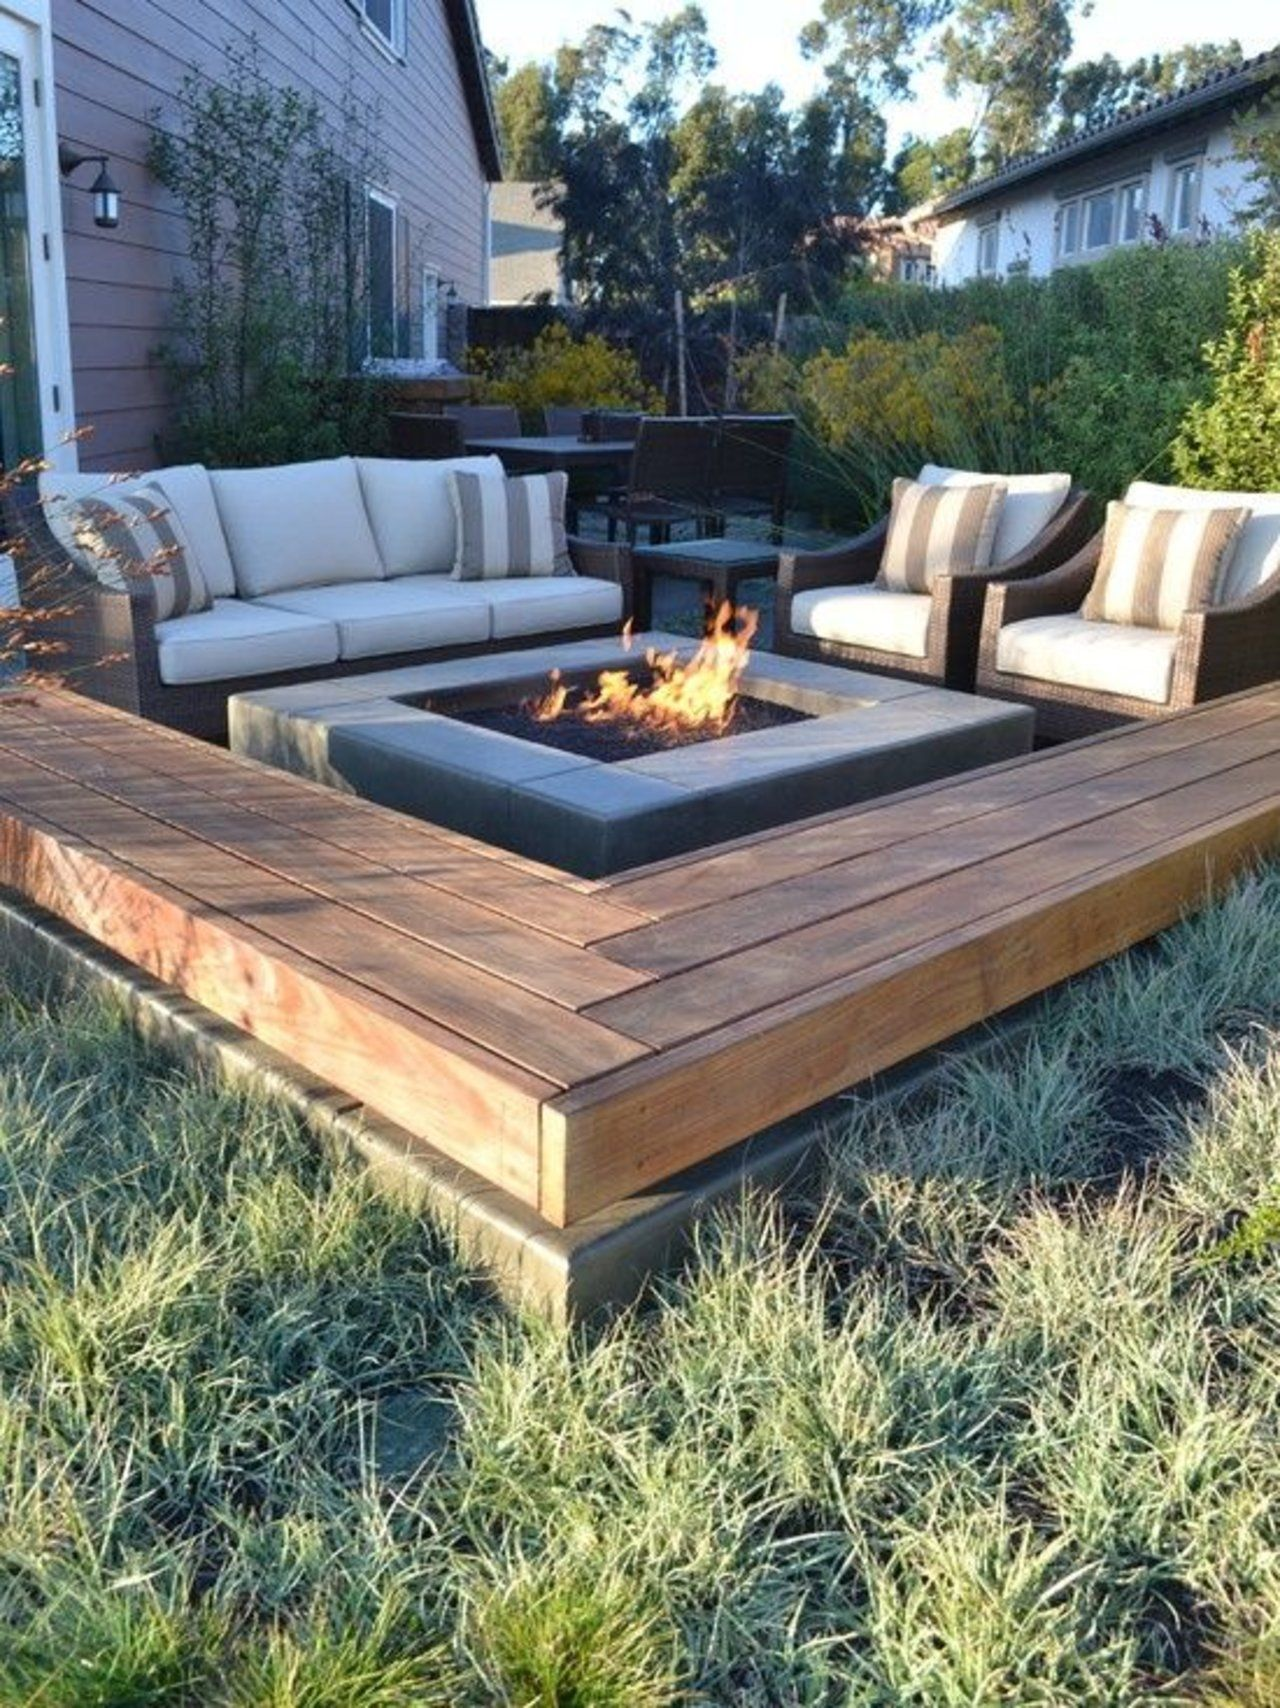 the final outdoor seating area necessity-an open fire pit which to gather YTUMDYJ